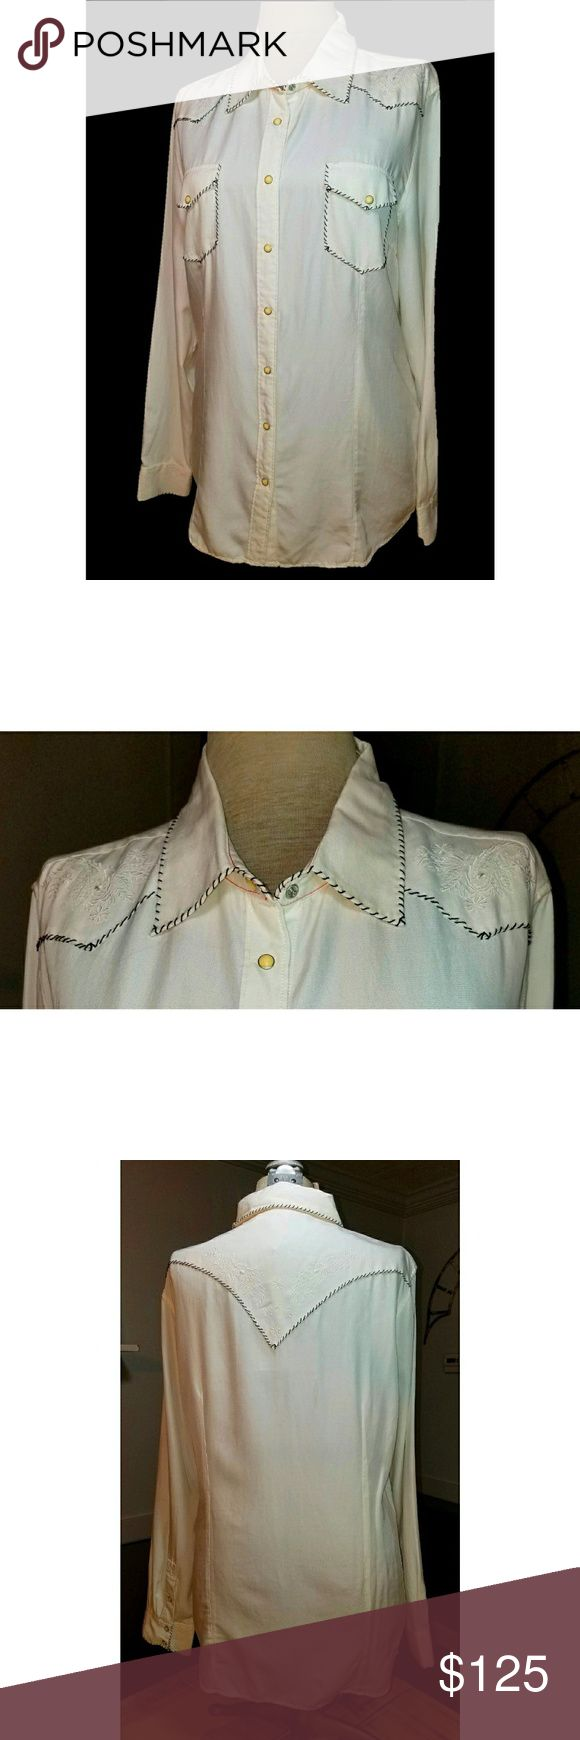 """Ryan Michael Embroidered White Dressy Blouse NWT Western Shirt Pearl Snap Frontandcuffs Darts at the bust Fitted seams down the front and back Long sleeve Silk & Cotton XL NWT  Beautiful white on white embroidery on shoulders and top of back! Retail: $162.00 Measurements: Shoulders: 18"""" Underarm to underarm:24"""" Waist (at narrowest point): 22"""" Length:29"""", about 1"""" longer in the back 53%Silk,47%Cotton Machine wash cold/tumble dry low Ryan Michael Tops Blouses"""